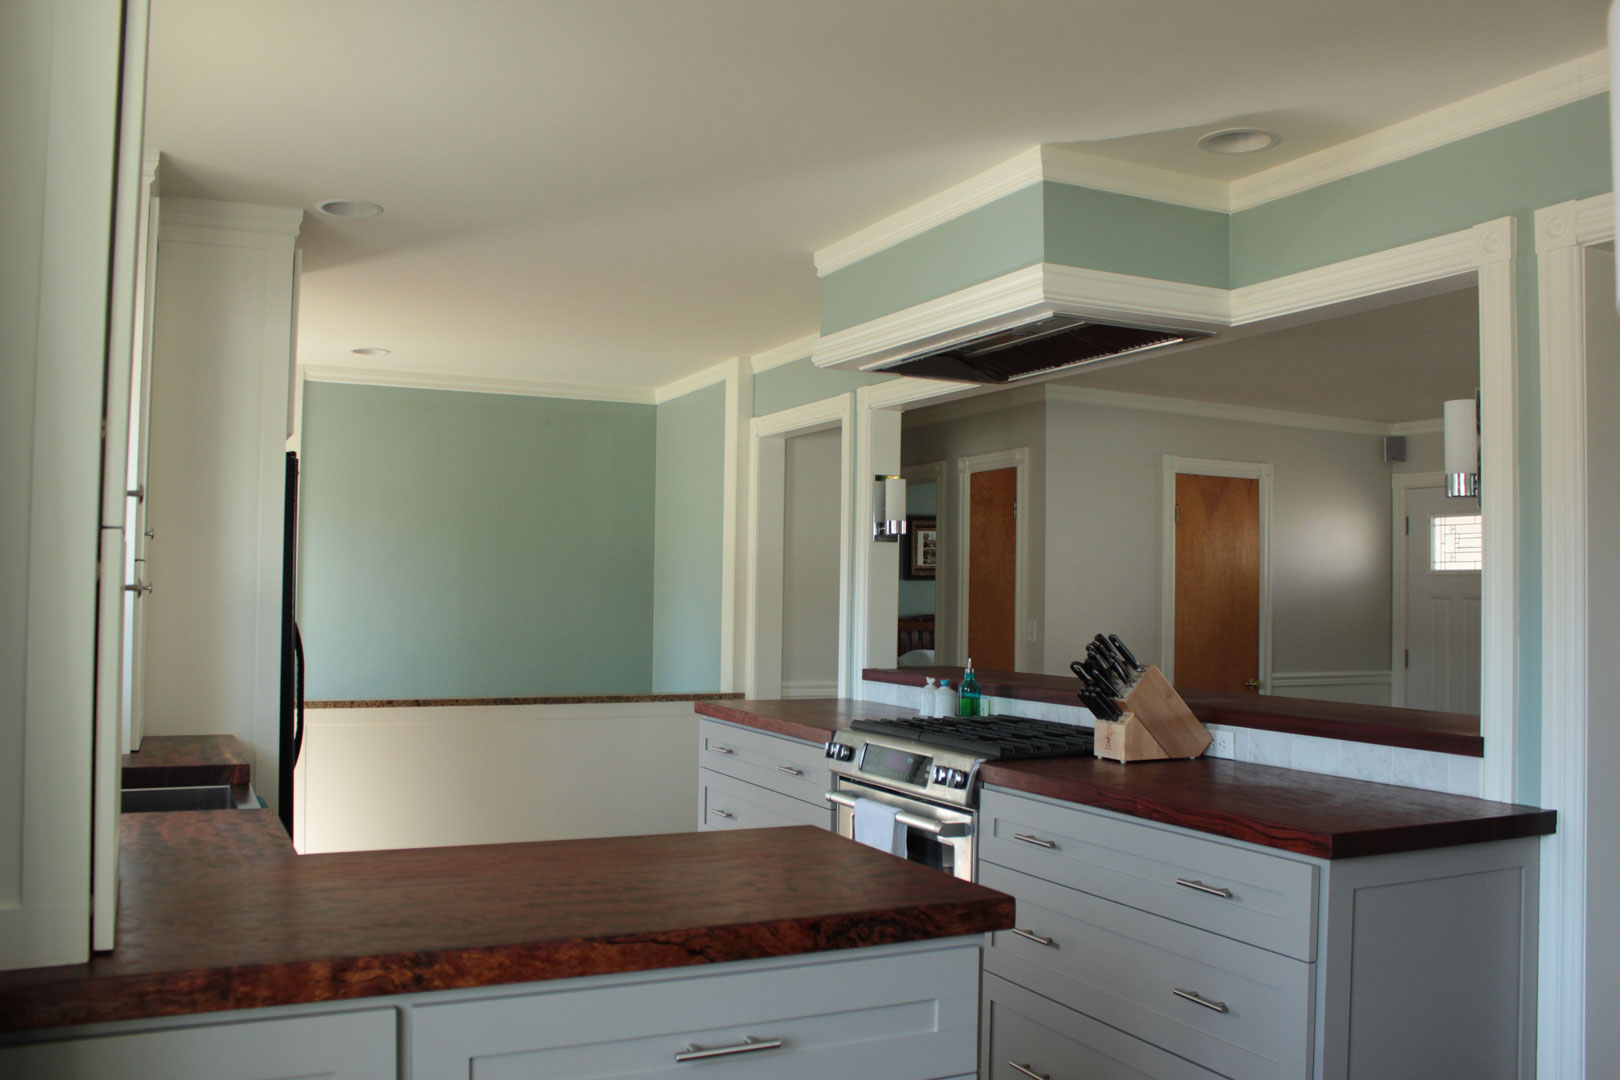 How Do I Clean My Factory Painted White Kitchen Cabinets